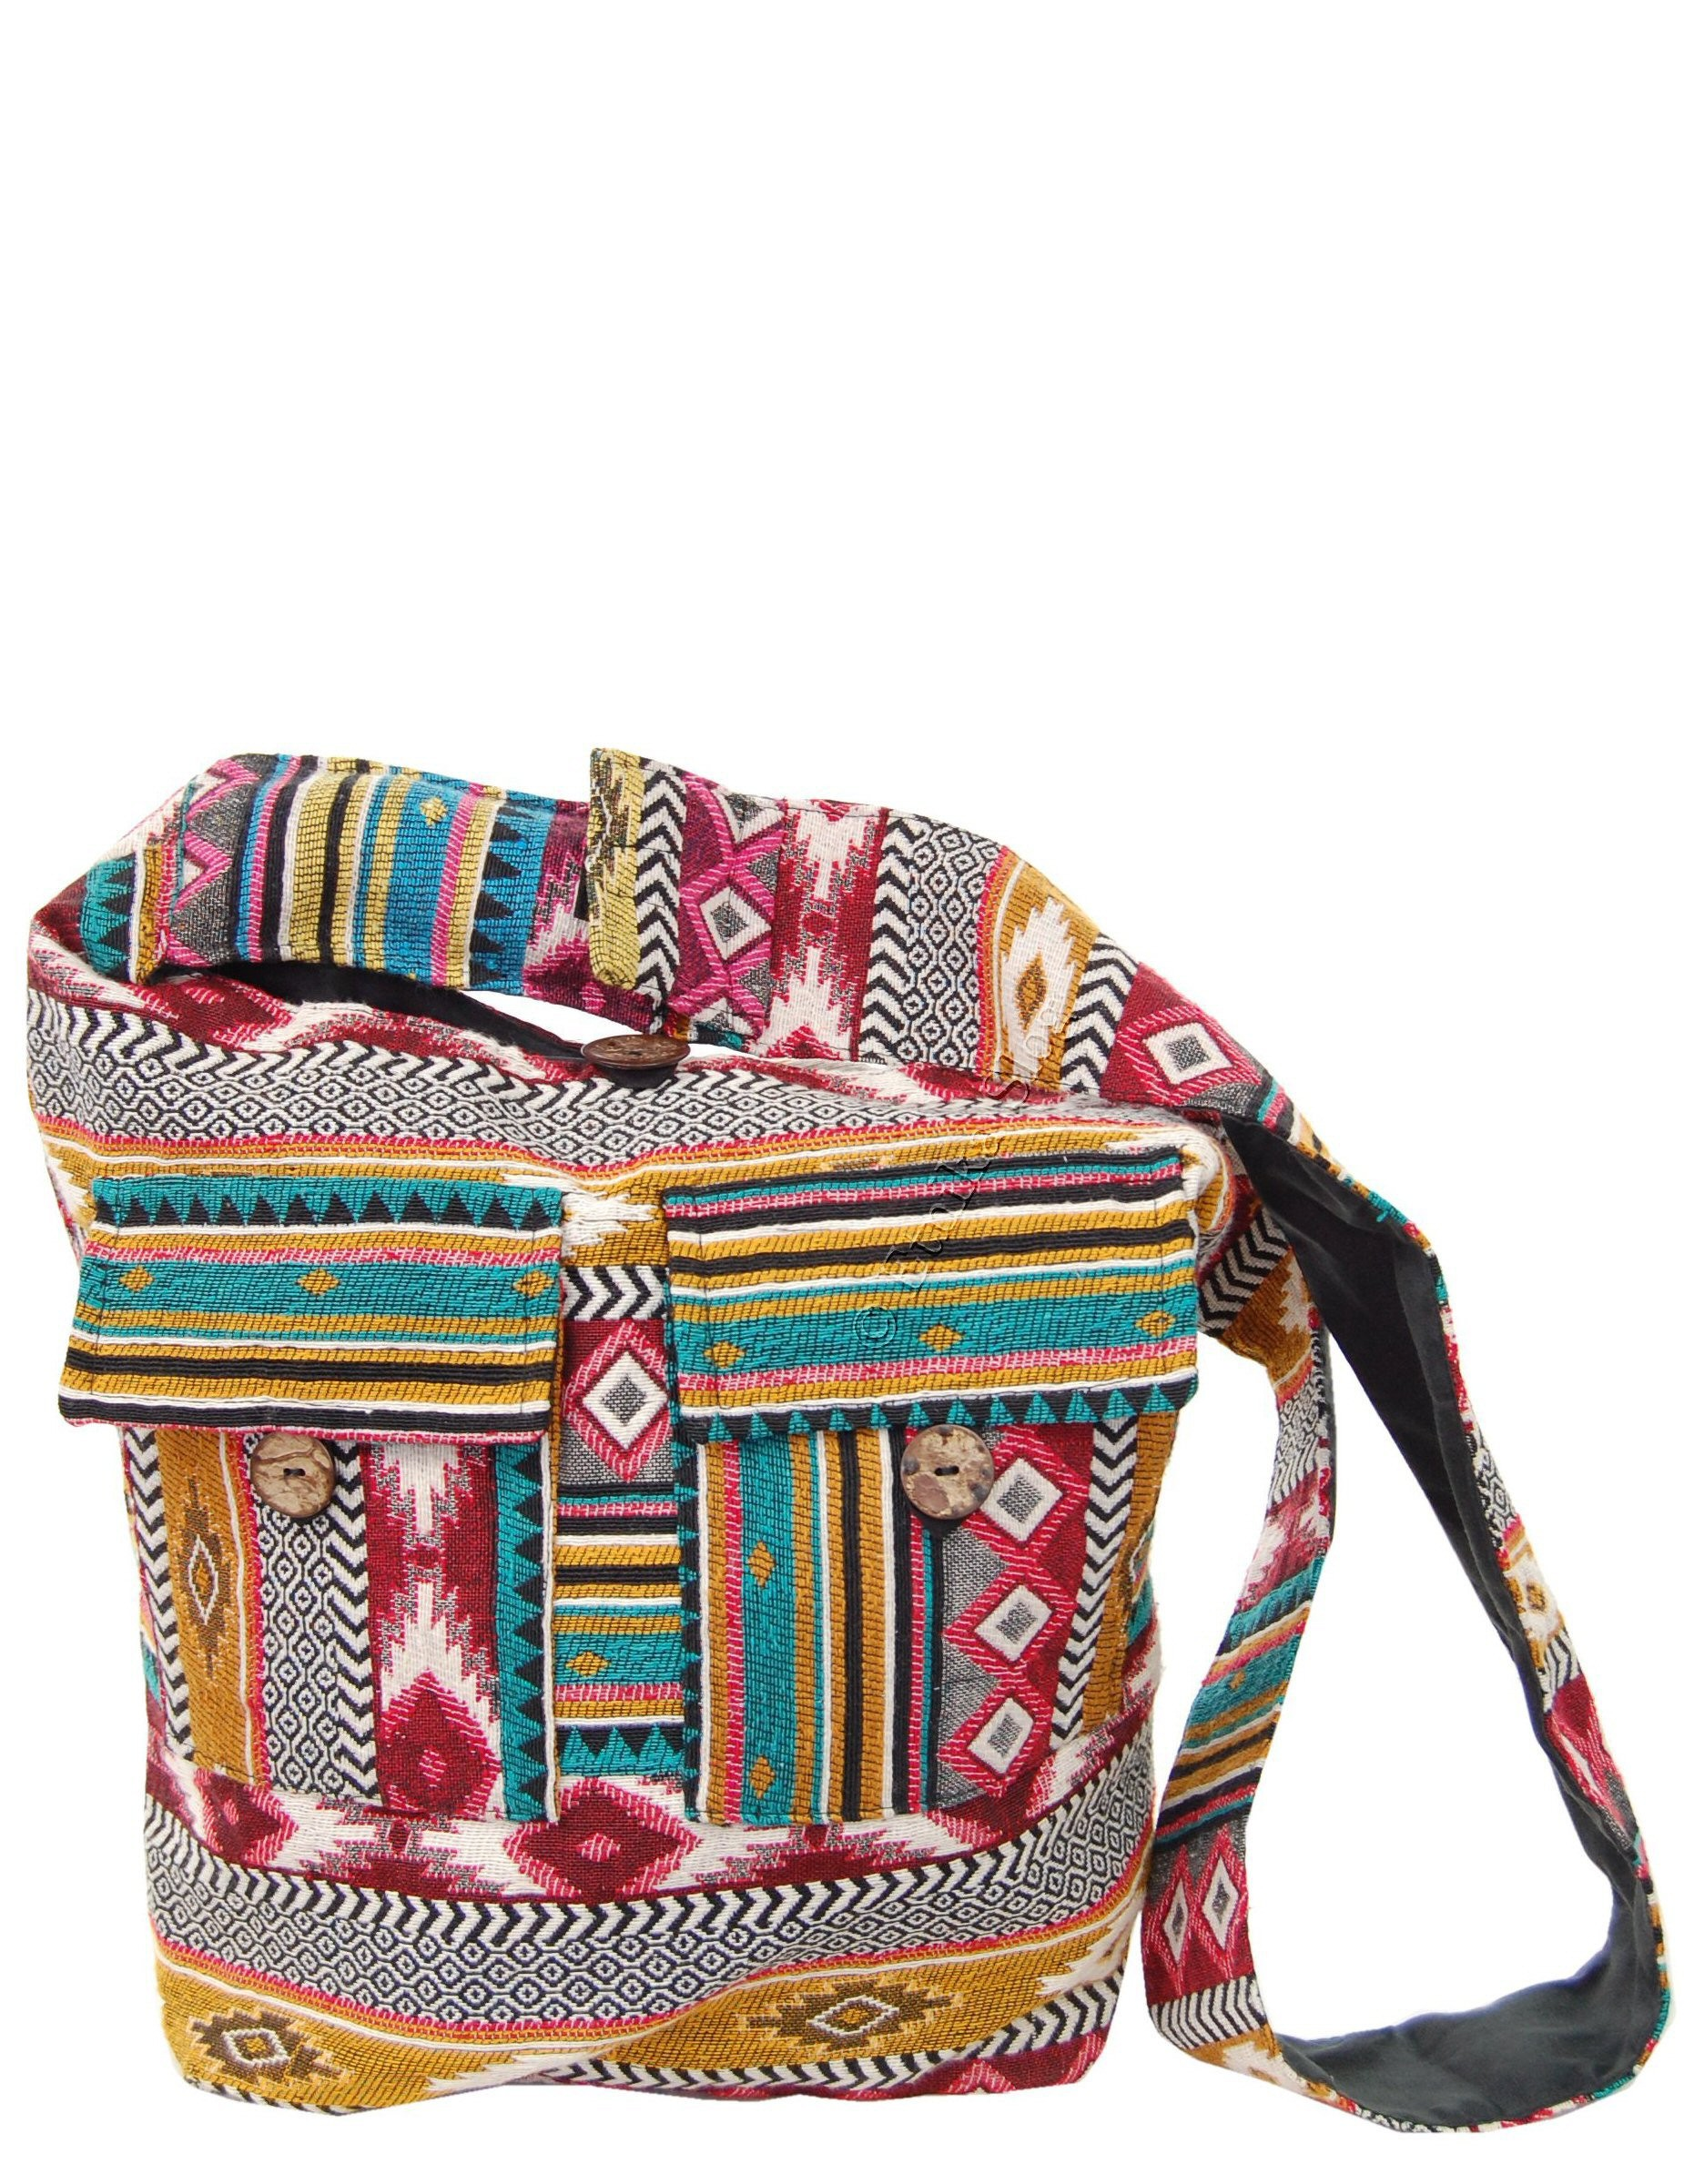 SHOULDER BAGS BS-IN71 - Etnika Slog d.o.o.